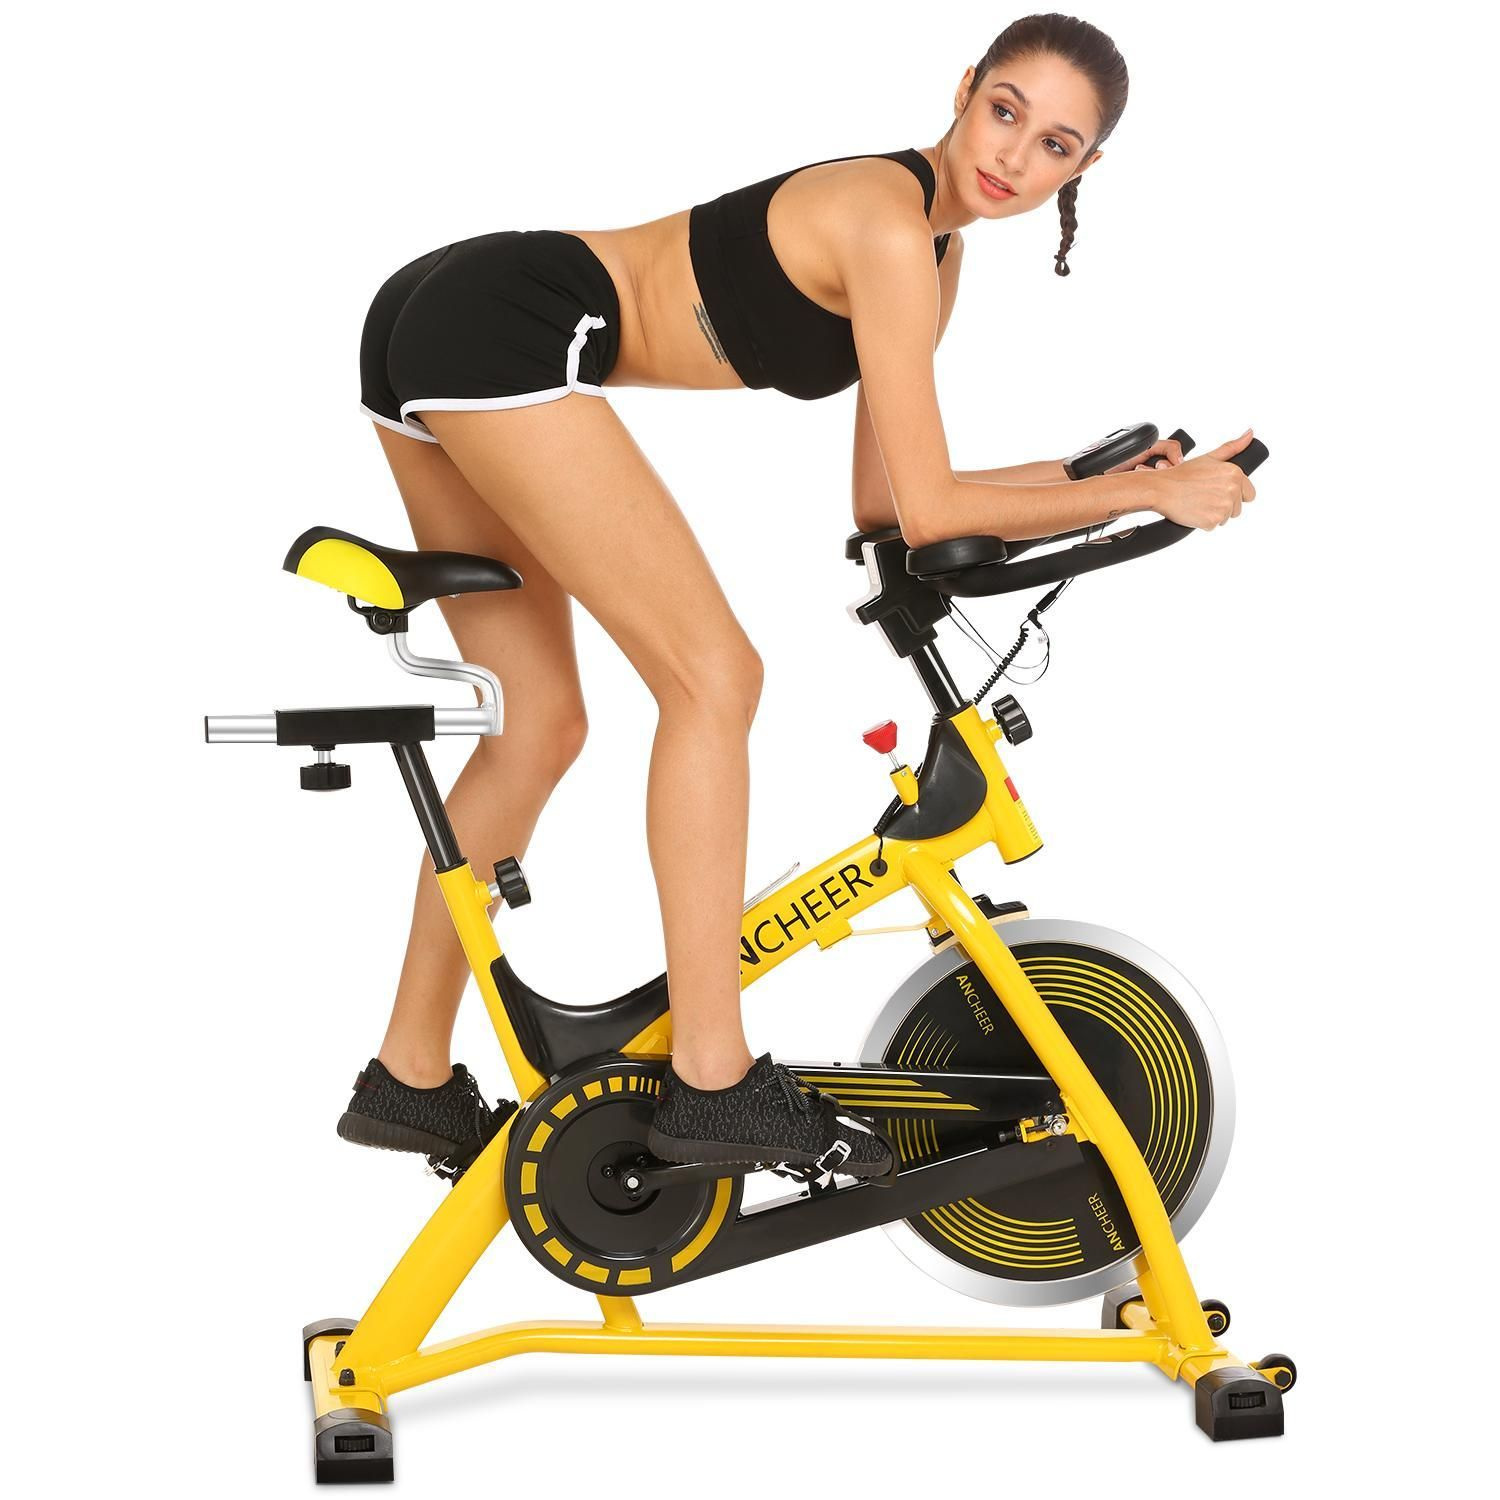 Schwinn Ic3 Indoor Cycling Bike With Tablet Holder Size Large